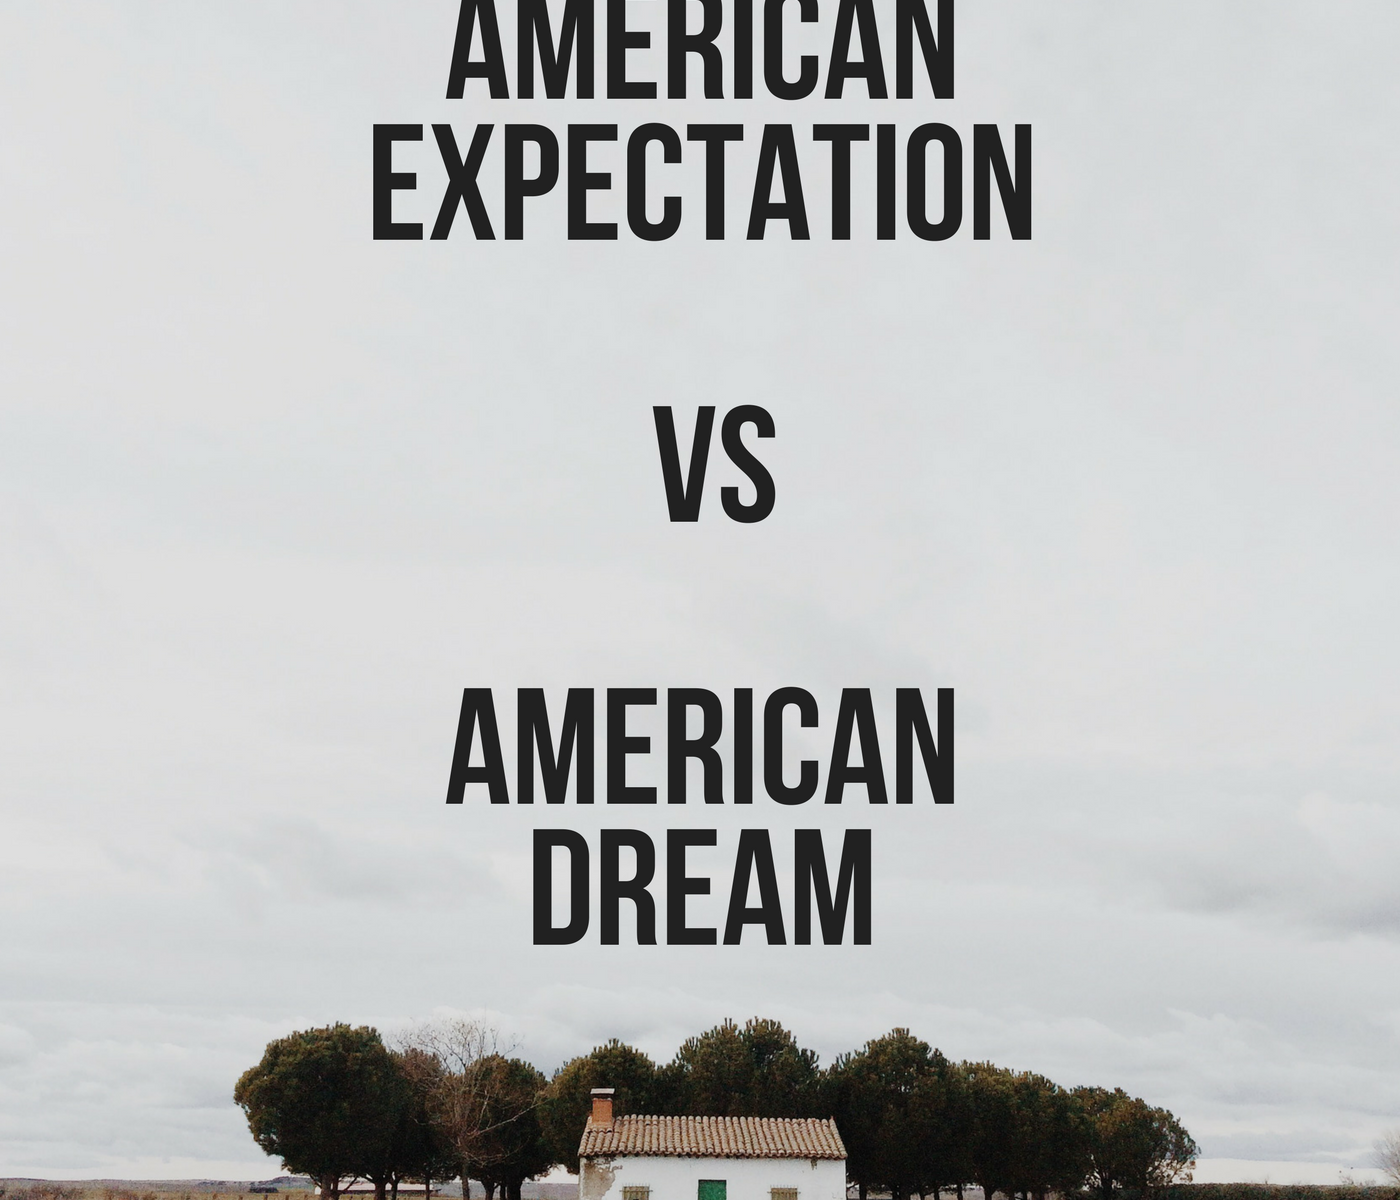 The American Expectation Versus the American Dream